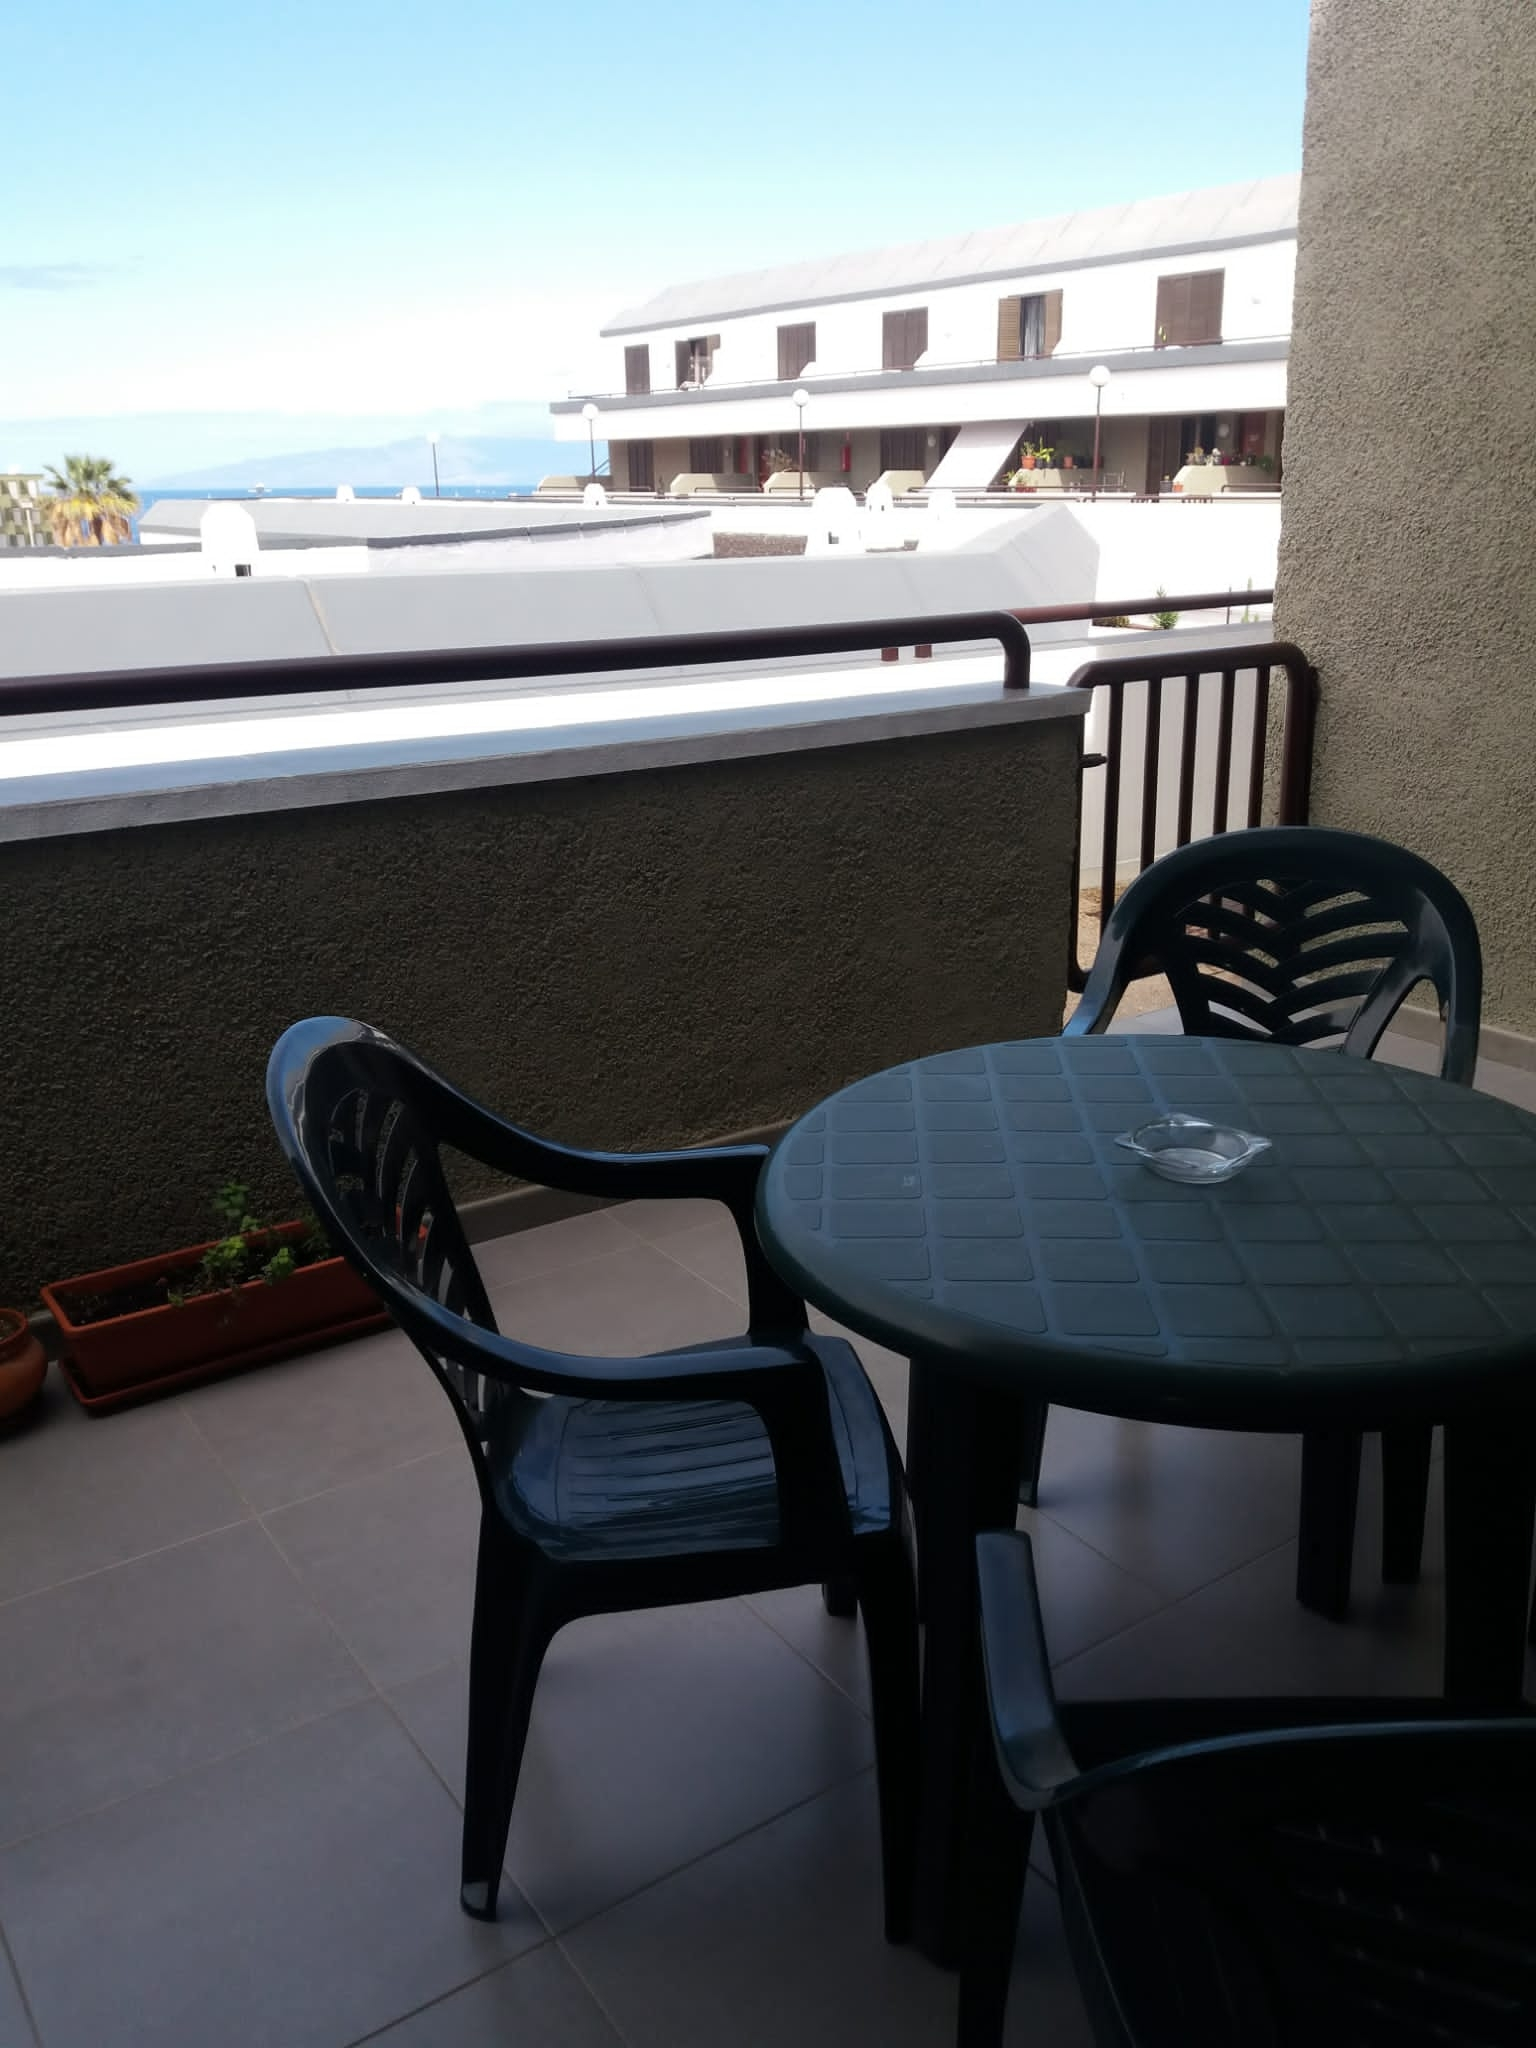 [AL-182] Apartment 1 Bedroom in Costa Adeje